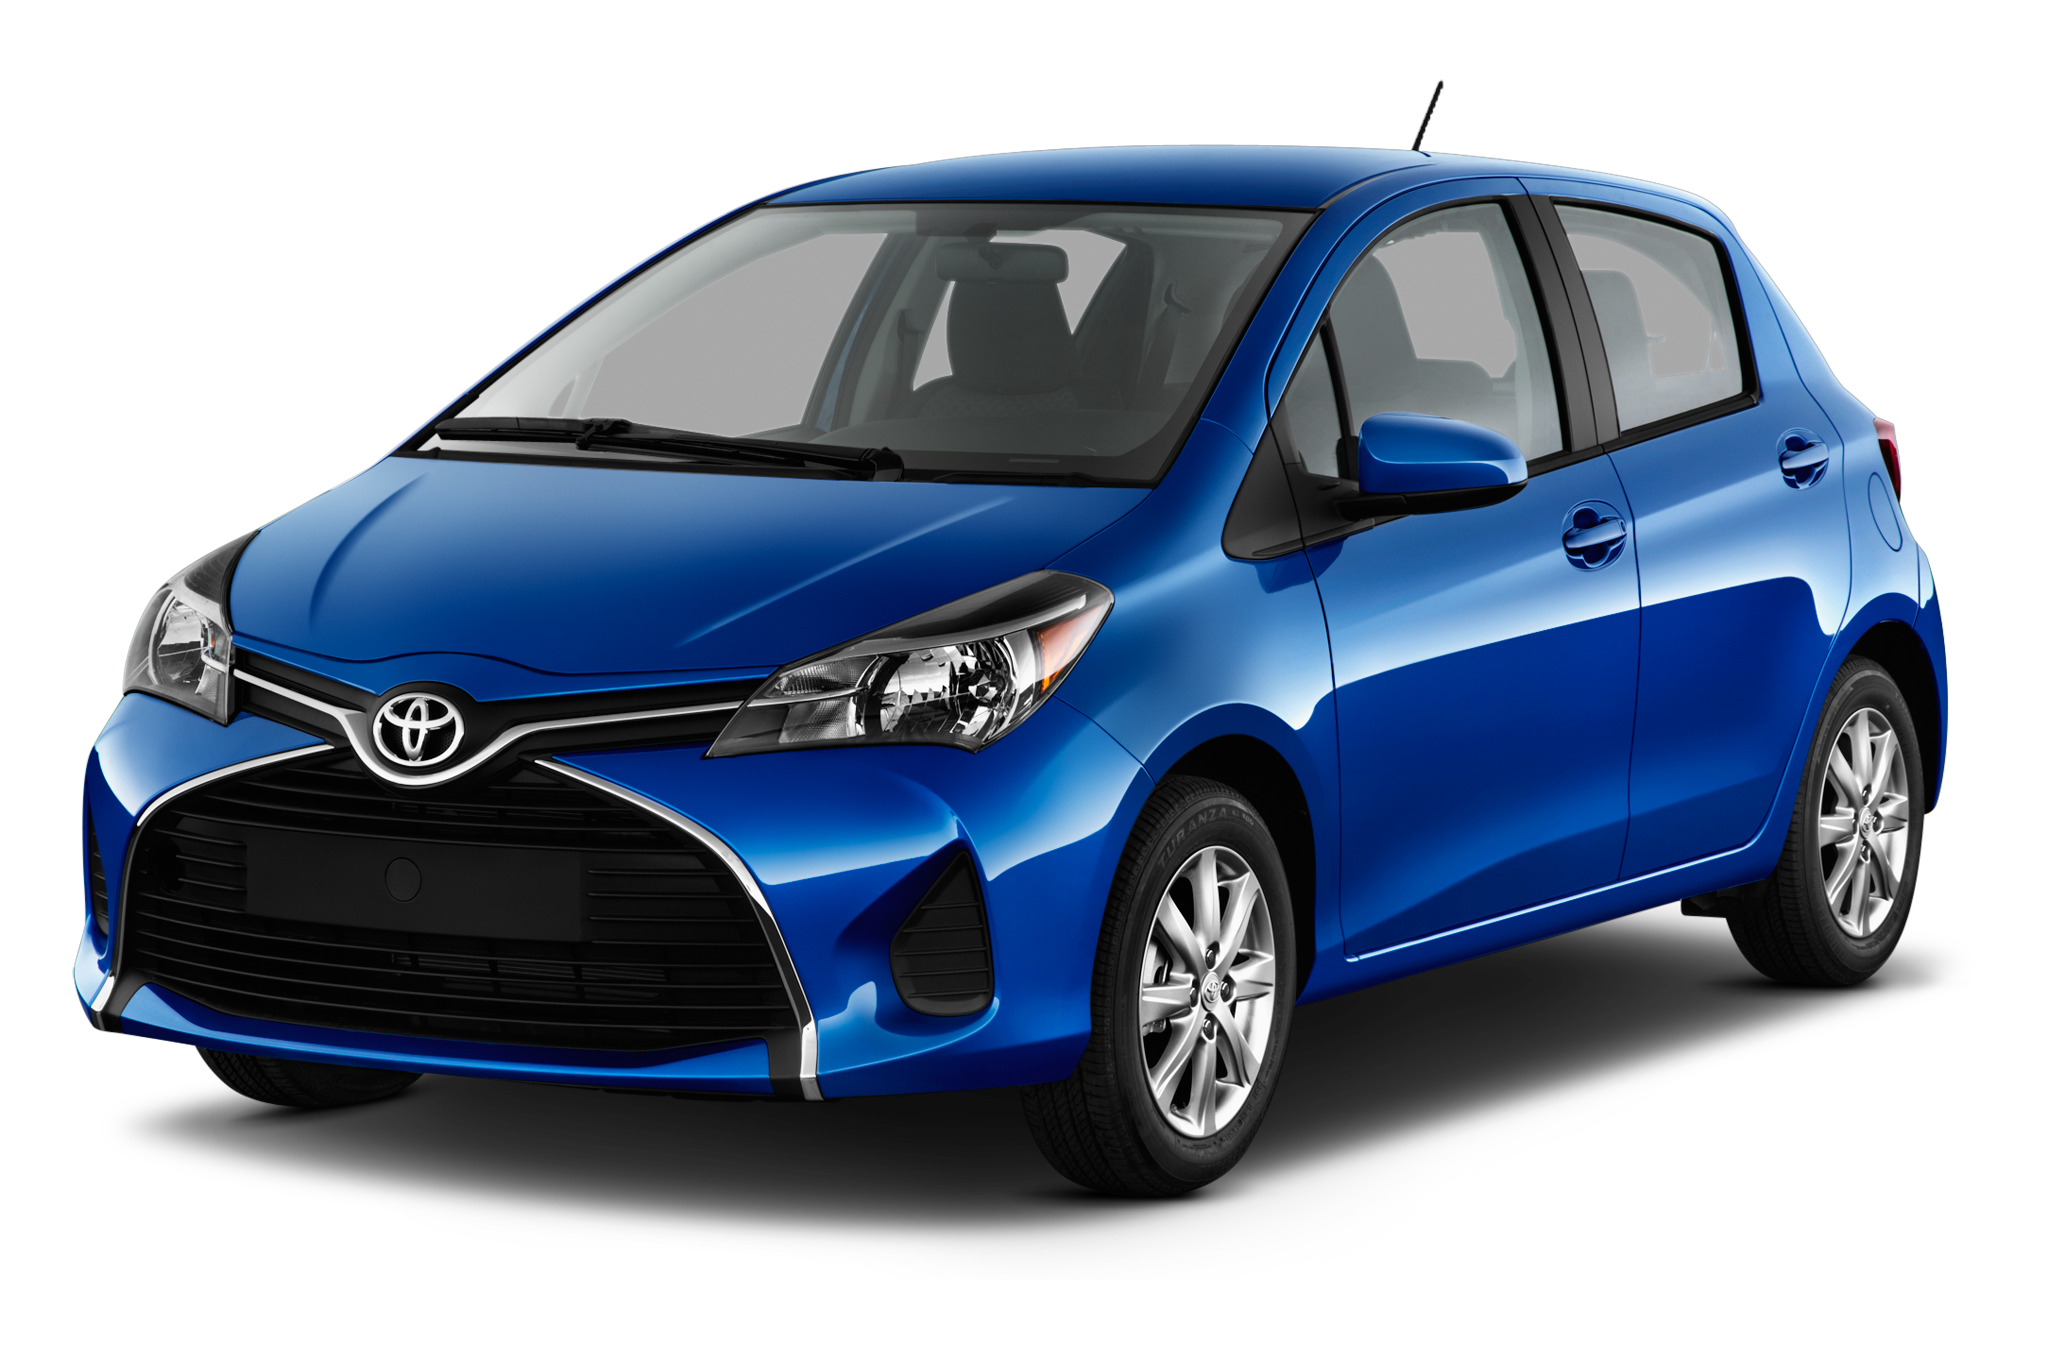 Toyota Yaris, what is the best type of car to rent